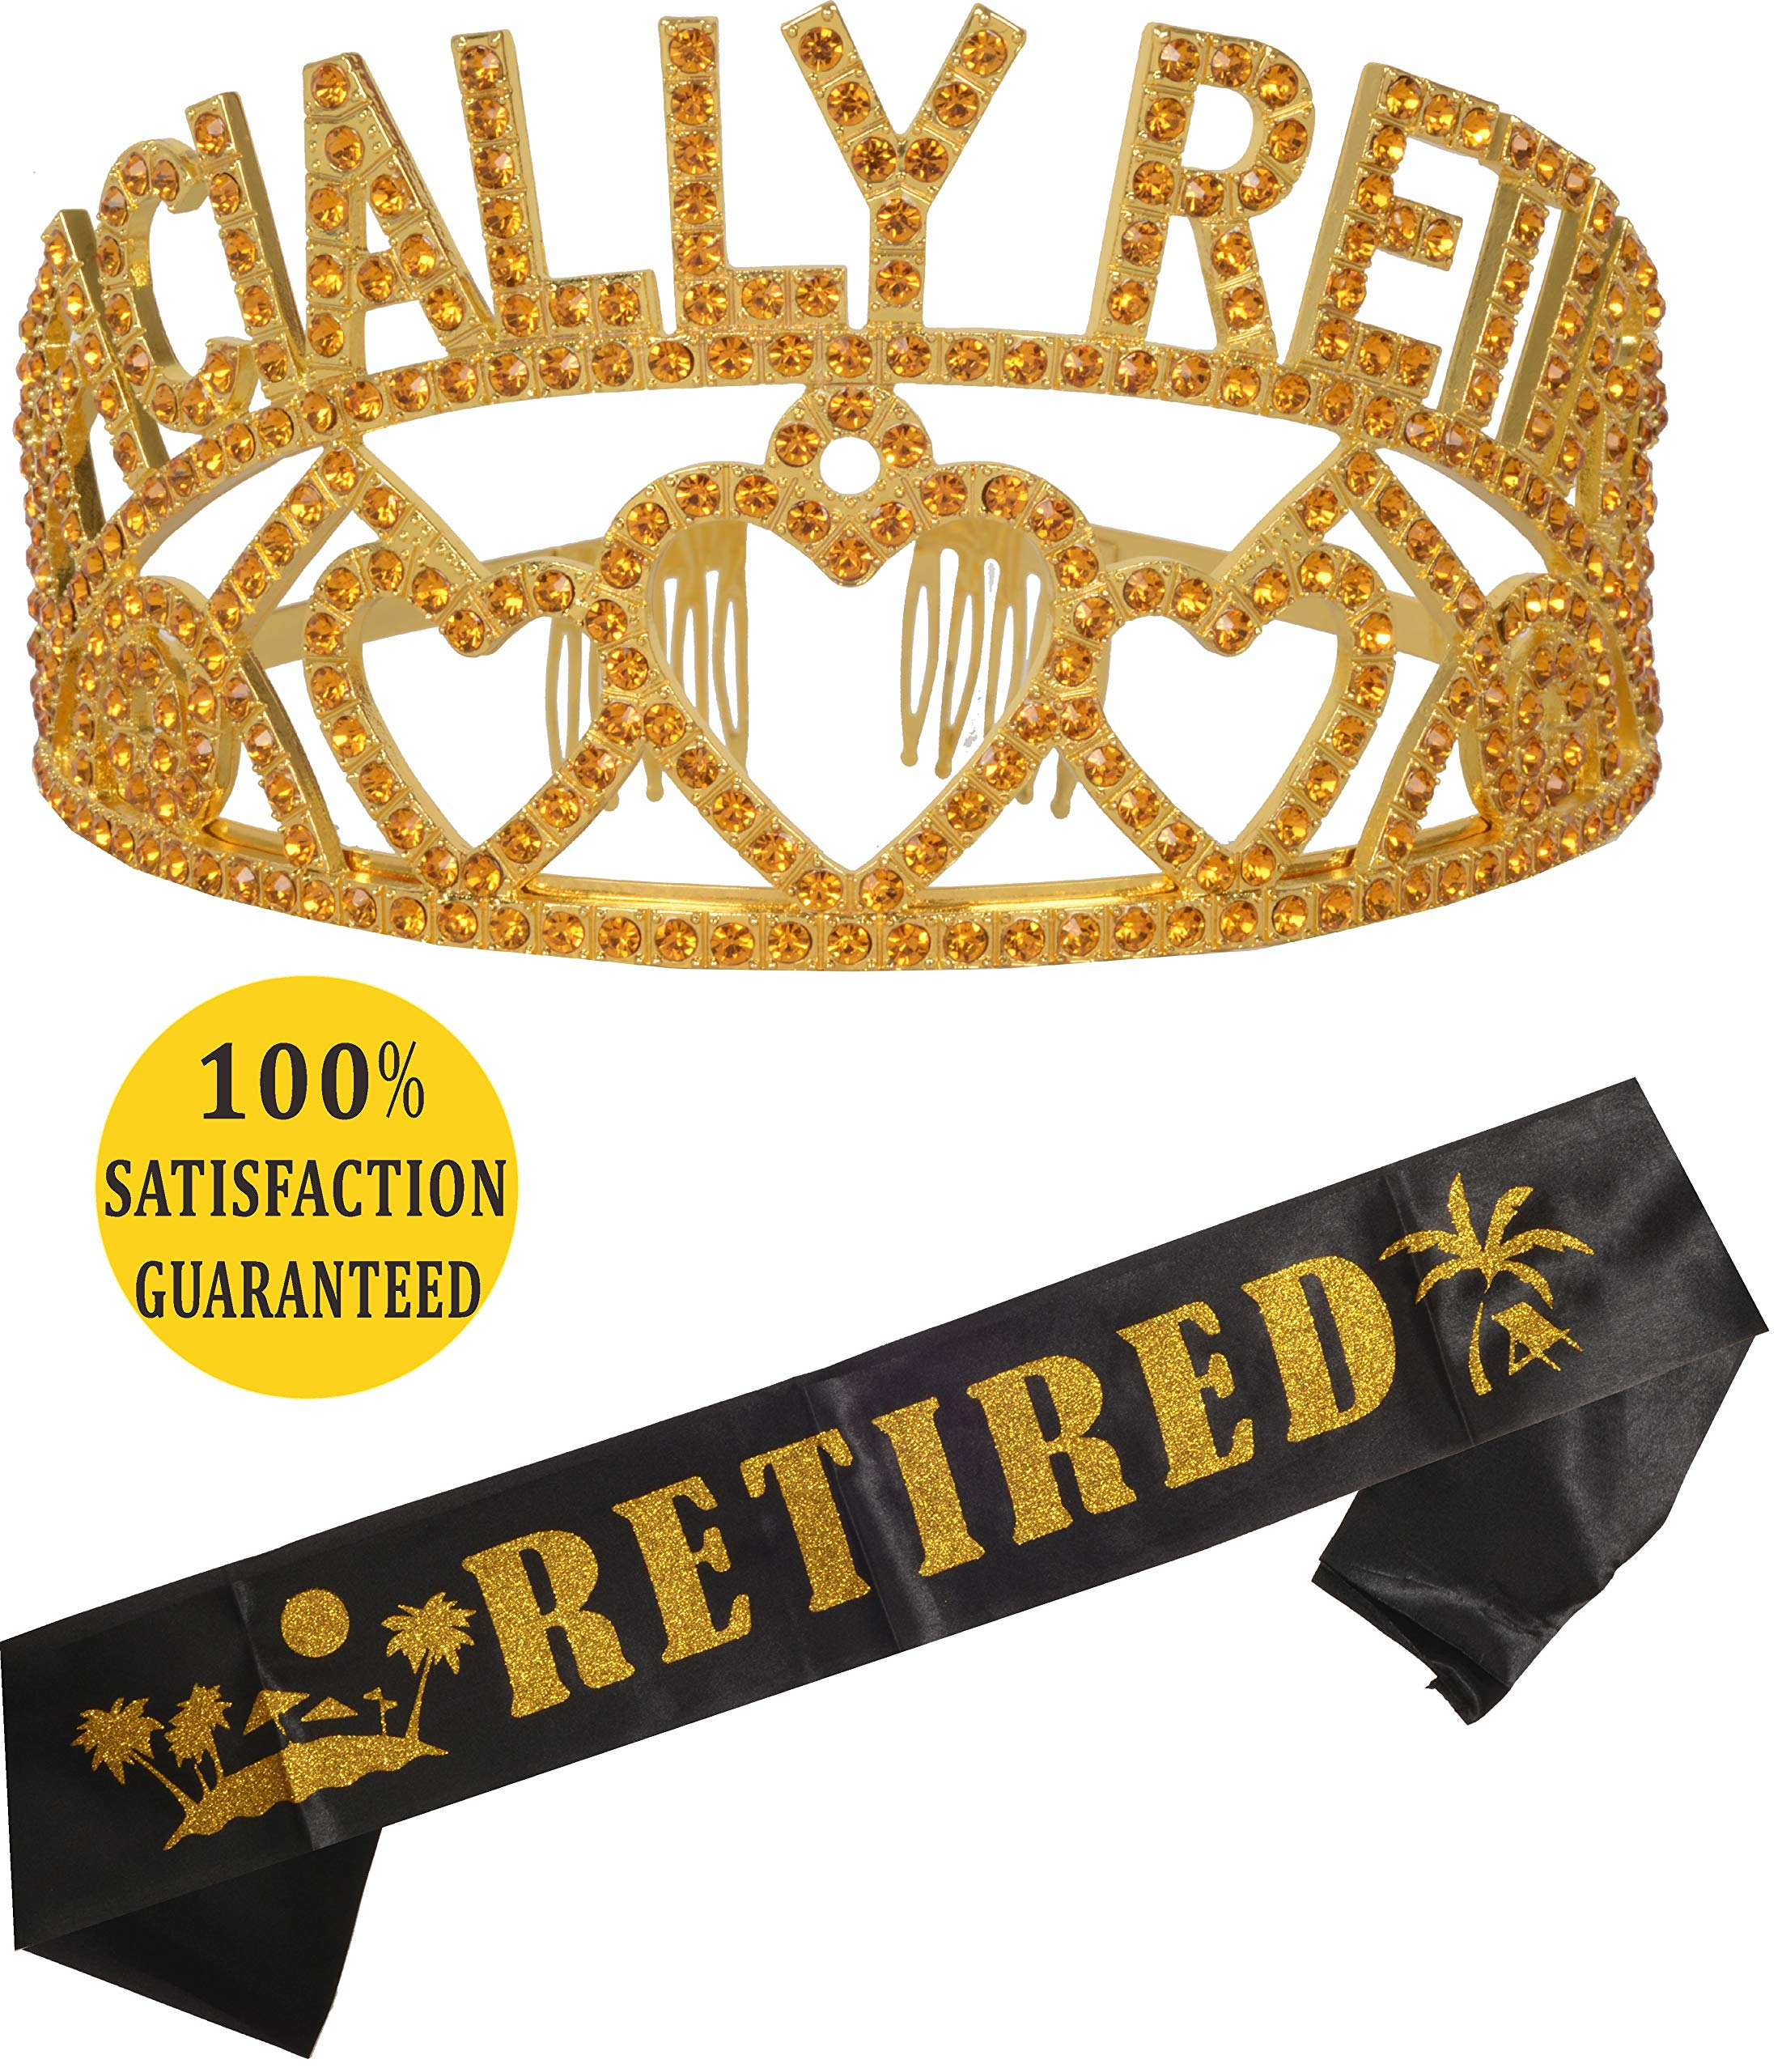 Gold Officially Retired Retirement Party Set | Officially Retired Tiara/Crown | Retired Sash |Retired! Satin Sash| Retirement Party Supplies, Gifts,Favors and Decorations | Great for Retiremen